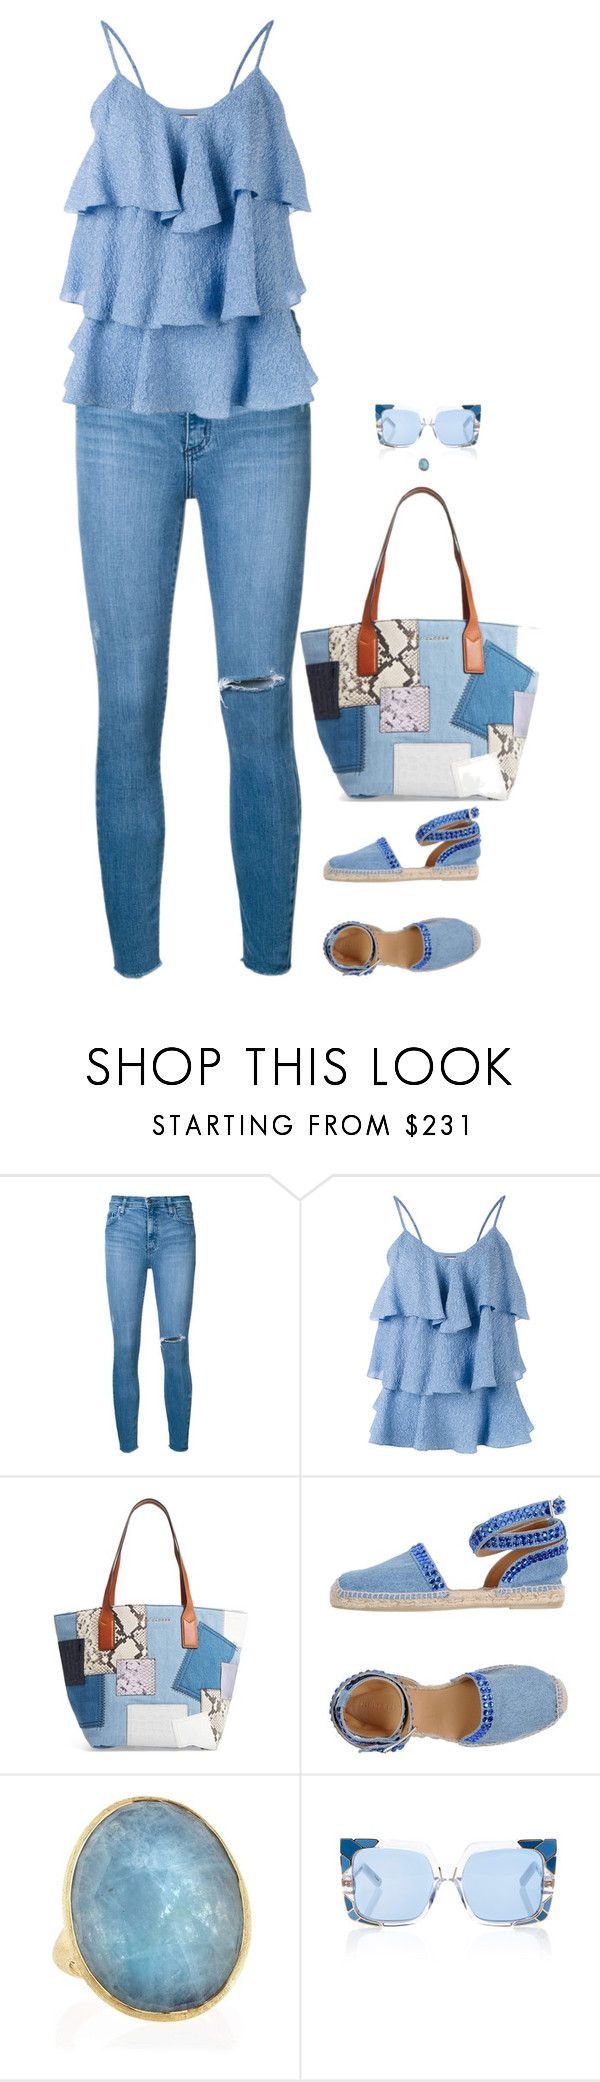 """""""Untitled #7850"""" by miki006 ❤ liked on Polyvore featuring Nobody Denim, Paul & Joe, Marc Jacobs, Philipp Plein, Marco Bicego and Pared"""